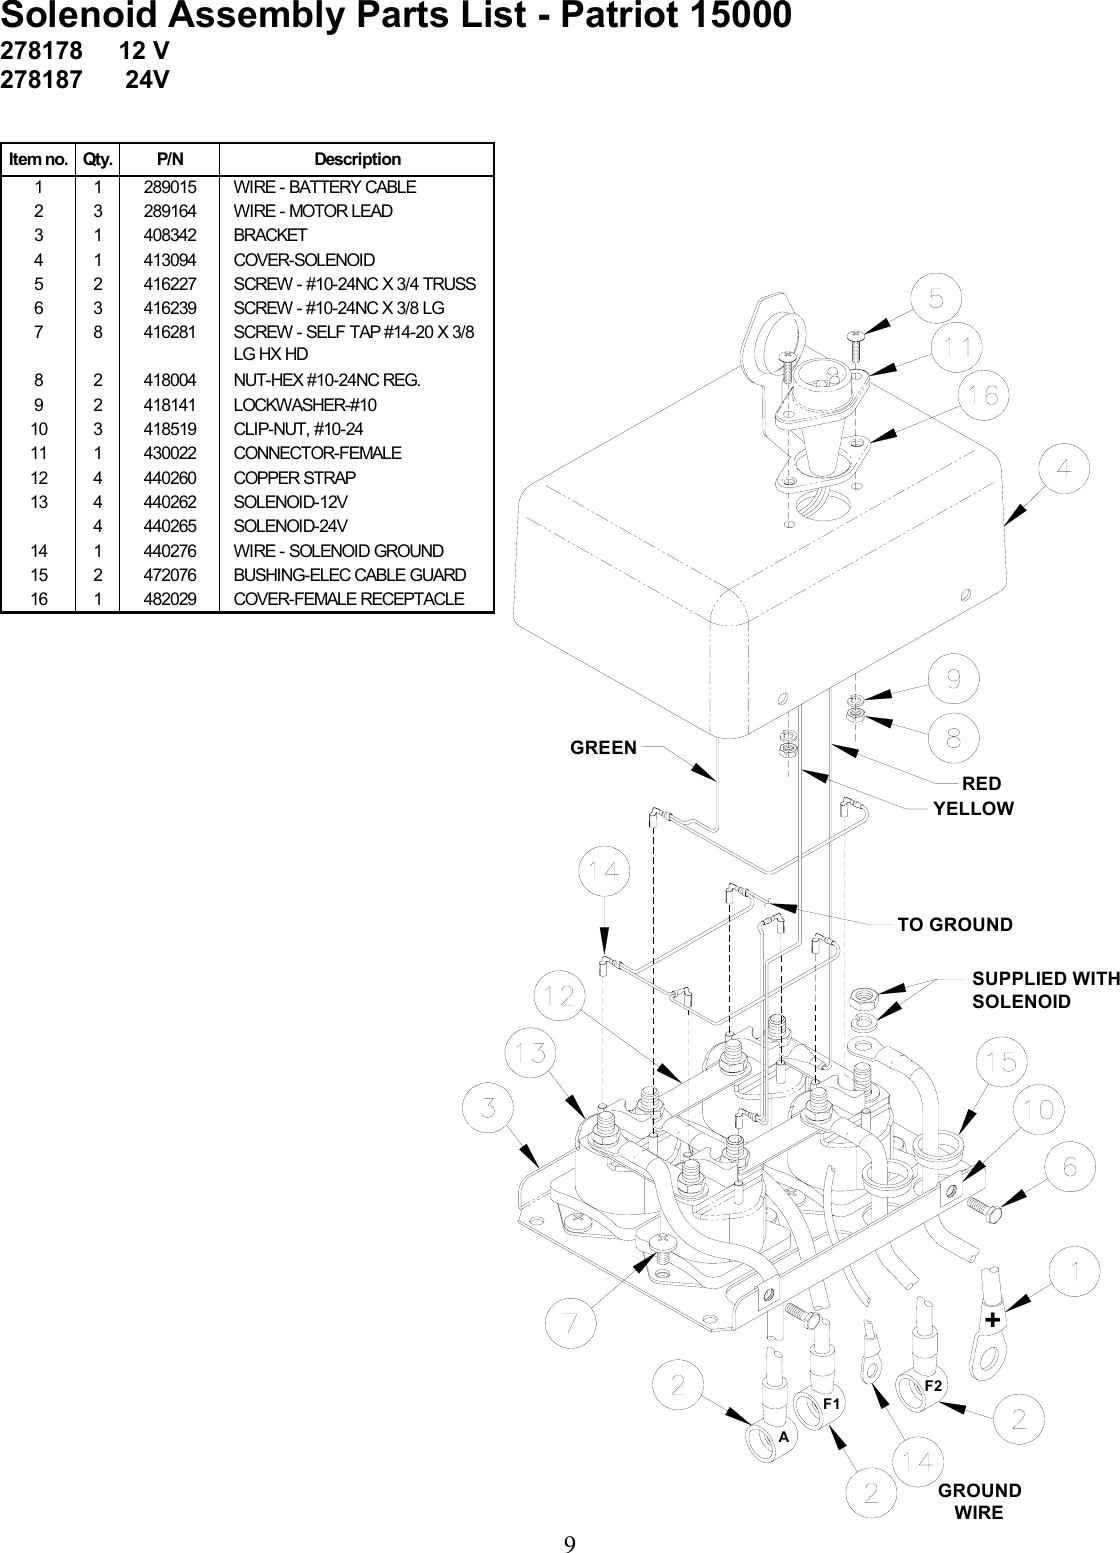 Ramsey Front Mount Electric Winch Patriot 15000 Users Manual 914089 on ramsey winch motor repair, superwinch solenoid wiring diagram, whelen 9000 series wiring diagram, electric winch wiring diagram, ramsey winch solenoid, superwinch 2500 wiring diagram, ramsey winch parts, ramsey 12000 solenoid wiring, dc reversing relay wiring diagram, 4 wheeler winch wiring diagram, winch solenoid diagram, warn winch diagram, ramsey re 12000 wiring-diagram, winch parts diagram, 24v relay wiring diagram, good windlass diagram, ramsey solenoid parts diagram, badlands 12000 winch wiring diagram, 12 volt winch wiring diagram, superwinch parts diagram,